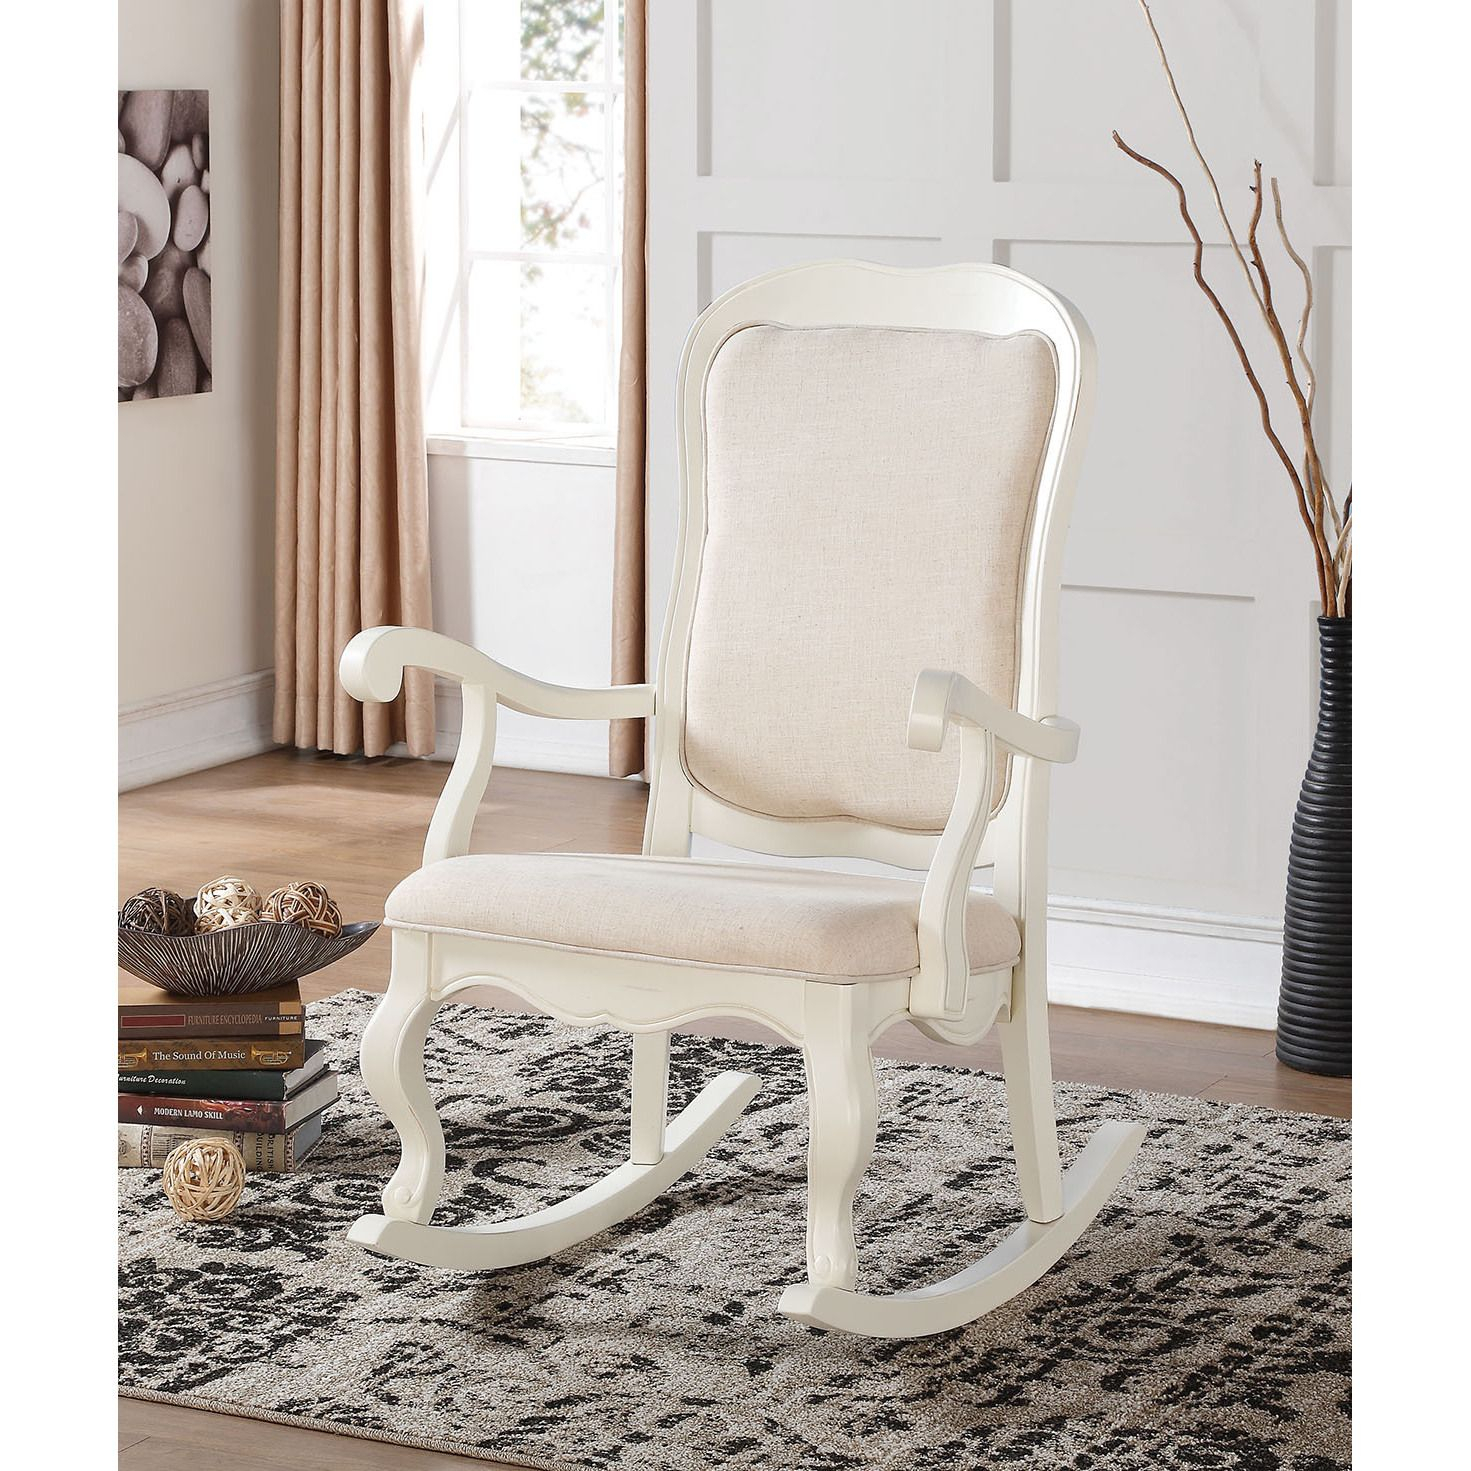 Popular Photo of Wooden Rocking Chairs With Fabric Upholstered Cushions, White